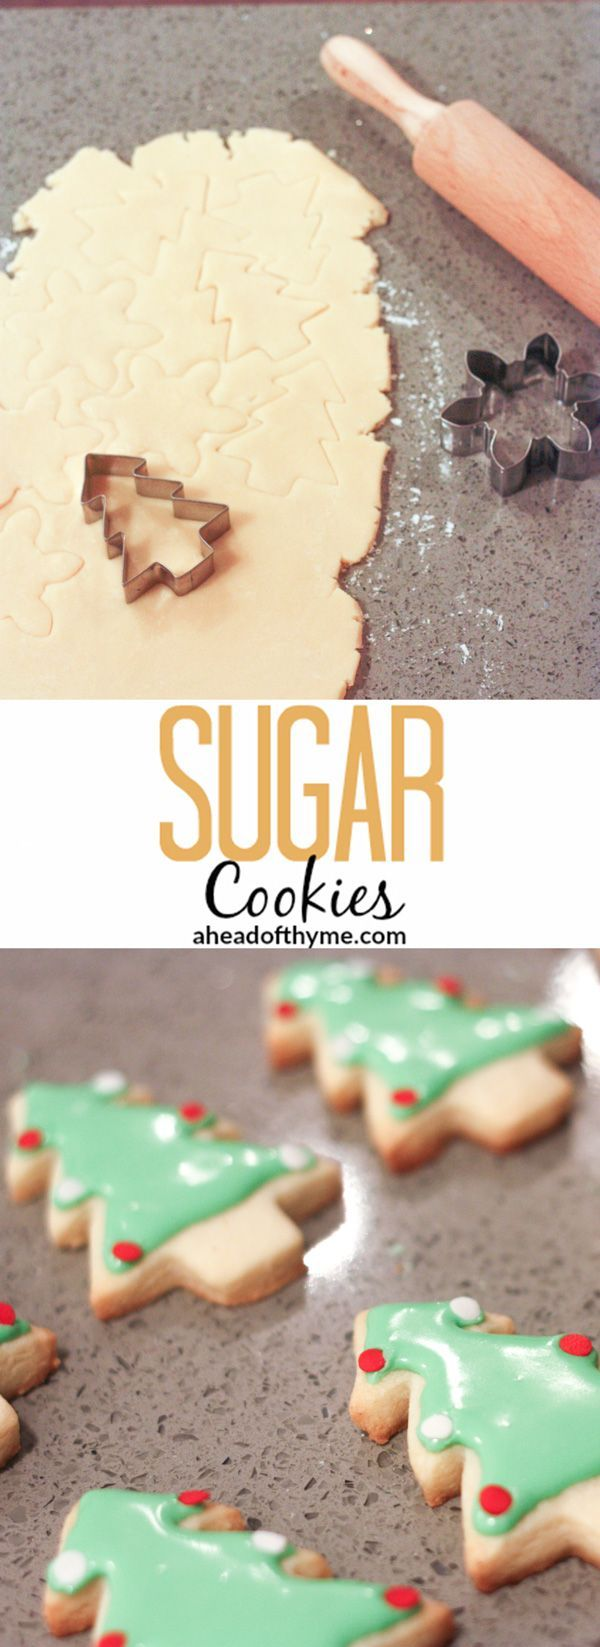 Sugar Cookies: It's that time of year again and one of my favourite holiday traditions is baking and decorating sugar cookies for my friends and family | aheadofthyme.com